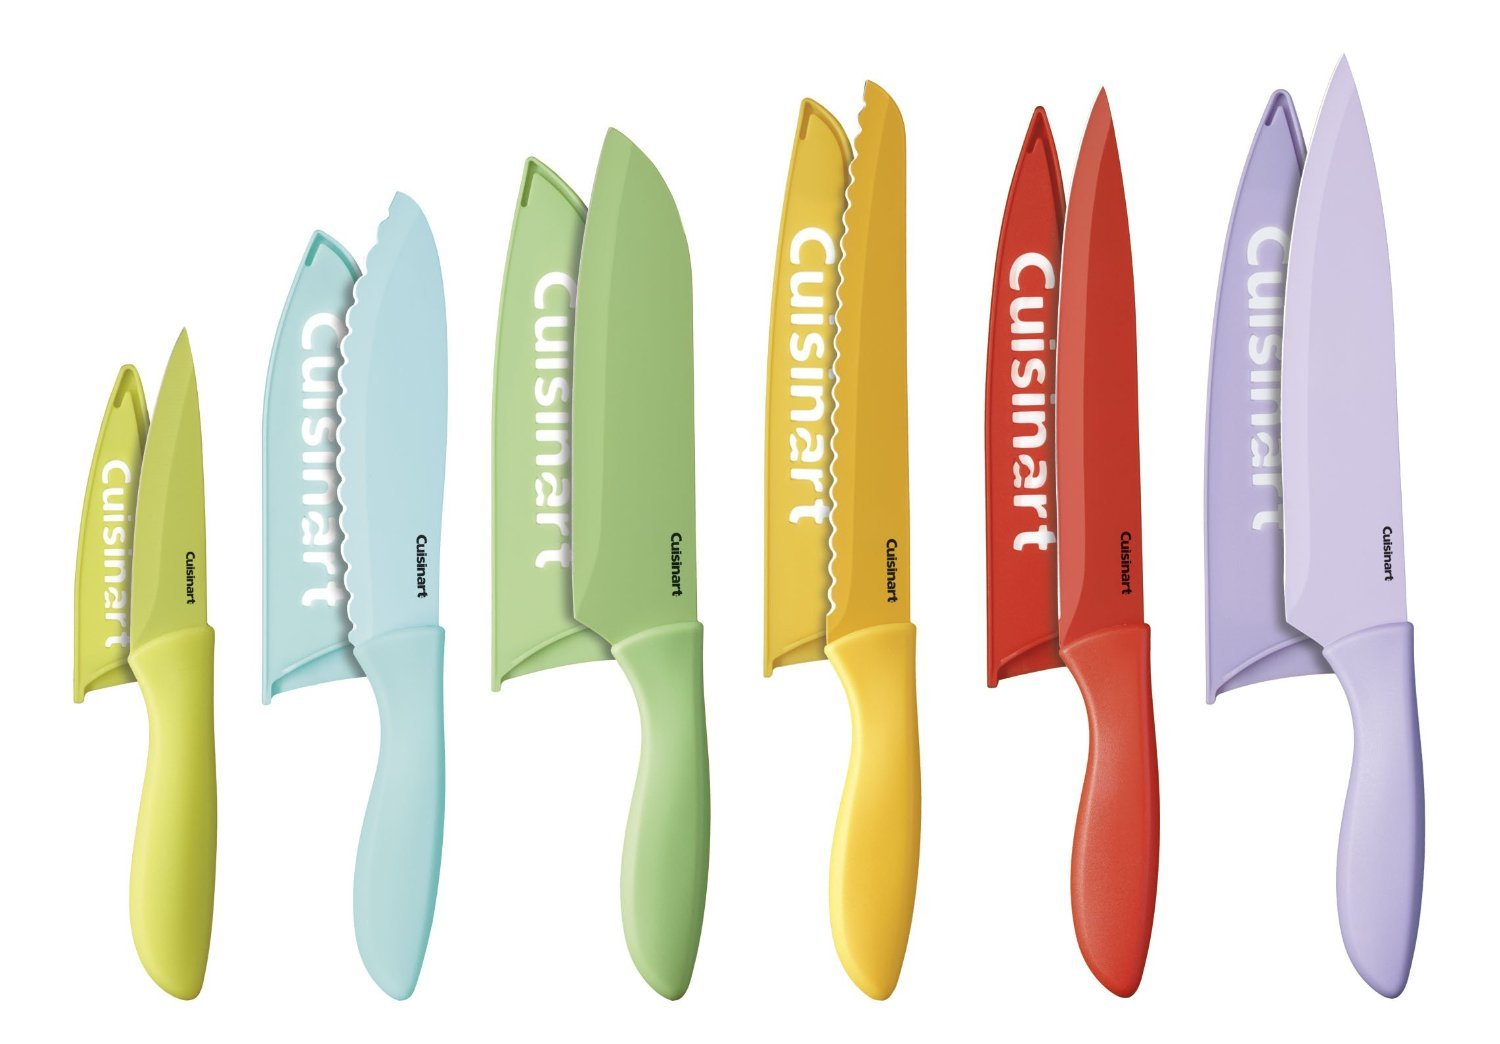 Ceramic and metal knives is the material they are made from ceramic - Amazon Com Cuisinart C55 12pcer1 12 Piece Ceramic Coated Color Knife Set With Blade Guards Multicolored Kitchen Dining